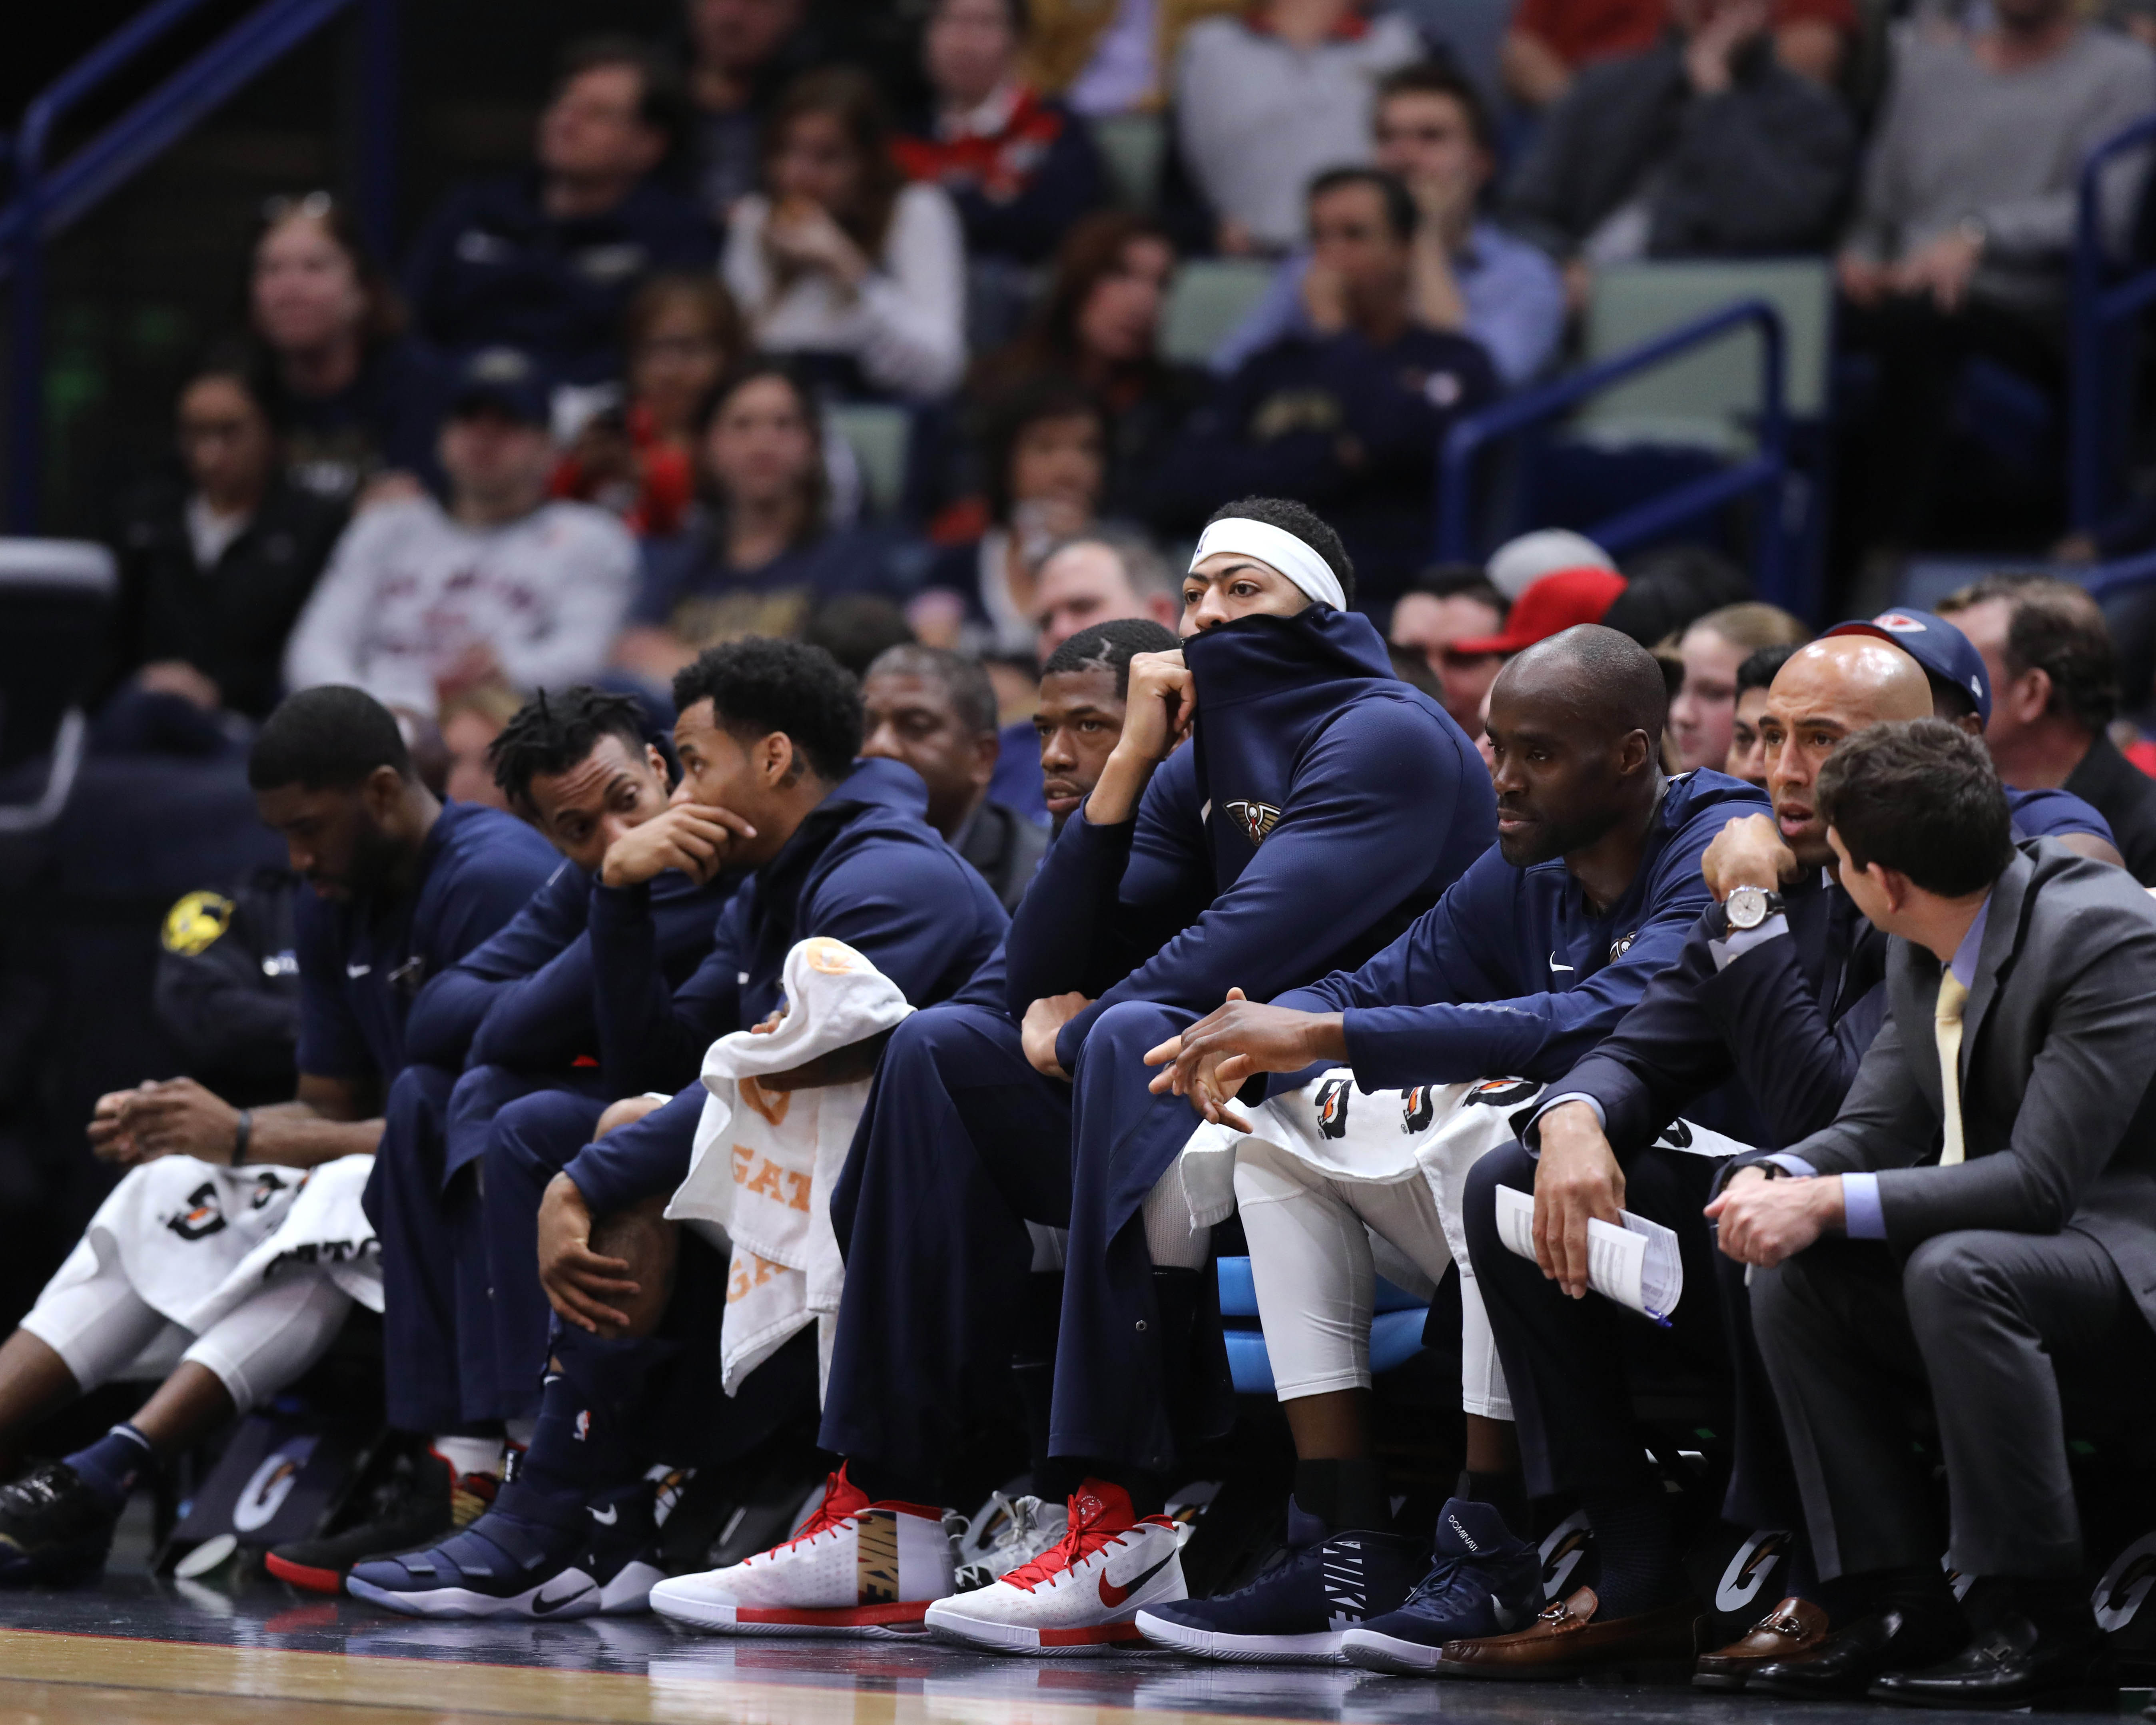 Without AD The Wizards Made The Pelicans Win Streak Disappear 116-97